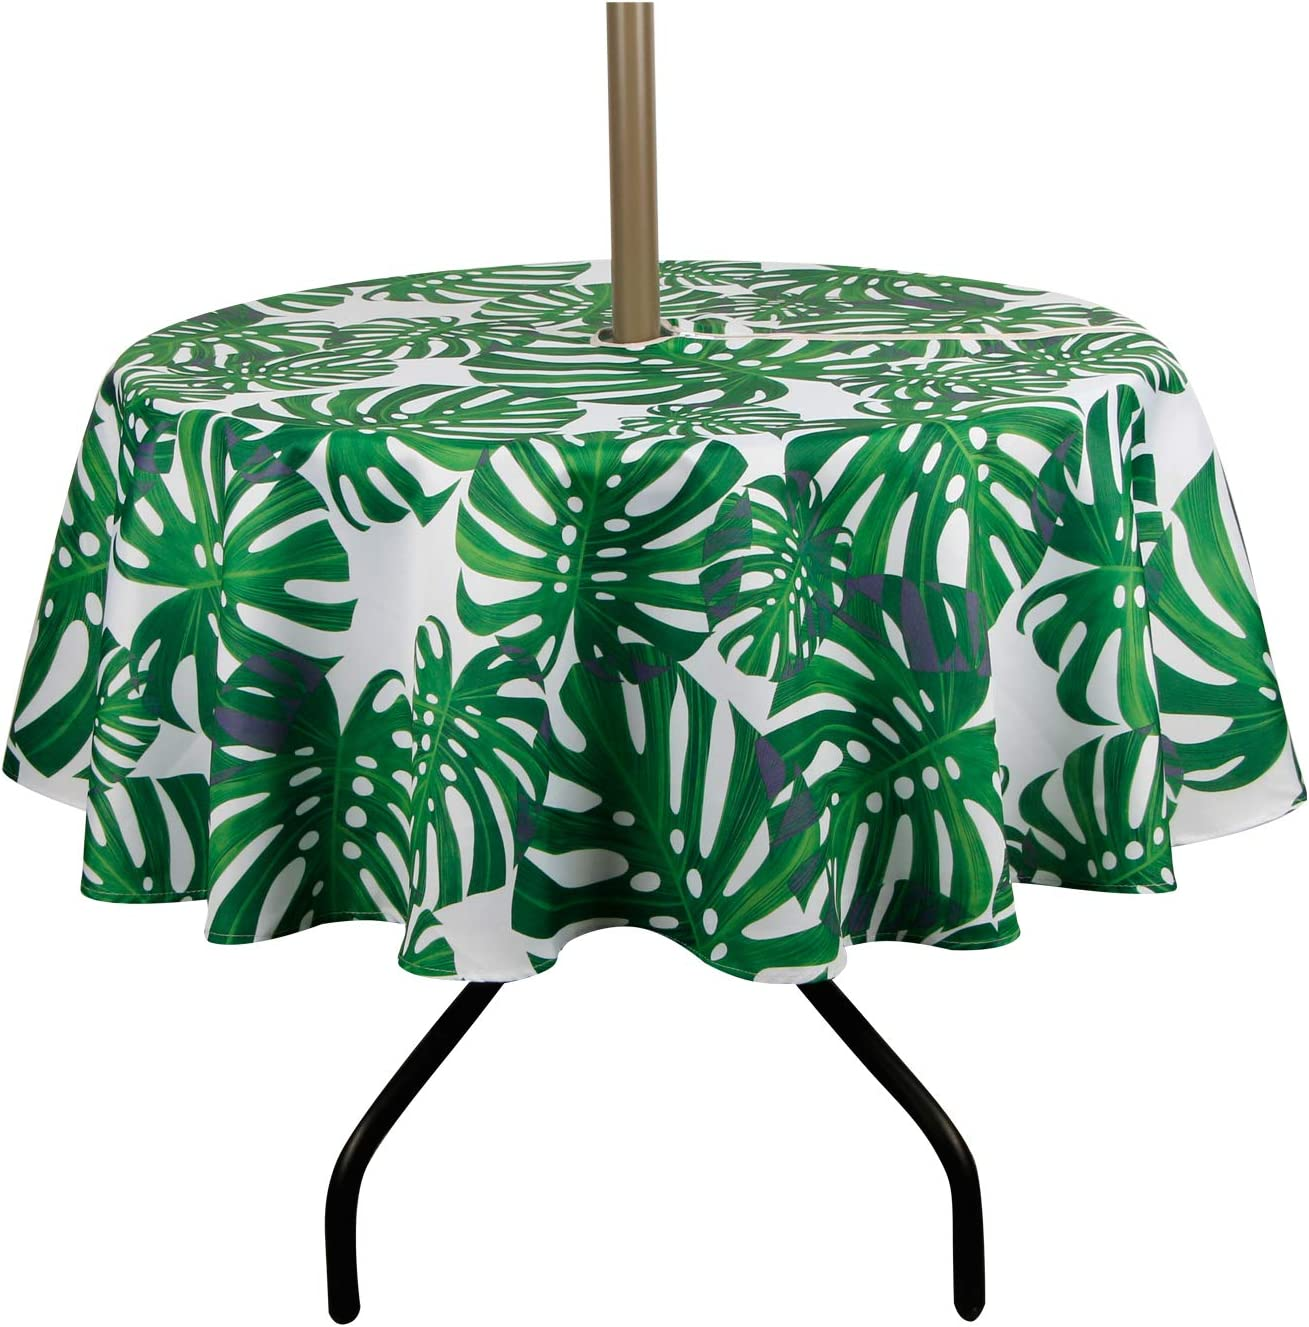 ColorBird Spring Summer Palm Leaf Outdoor Tablecloth Waterproof Spillproof Polyester Table Cover with Zipper Umbrella Hole for Patio Garden Tabletop Decor, 60 Round, Zippered